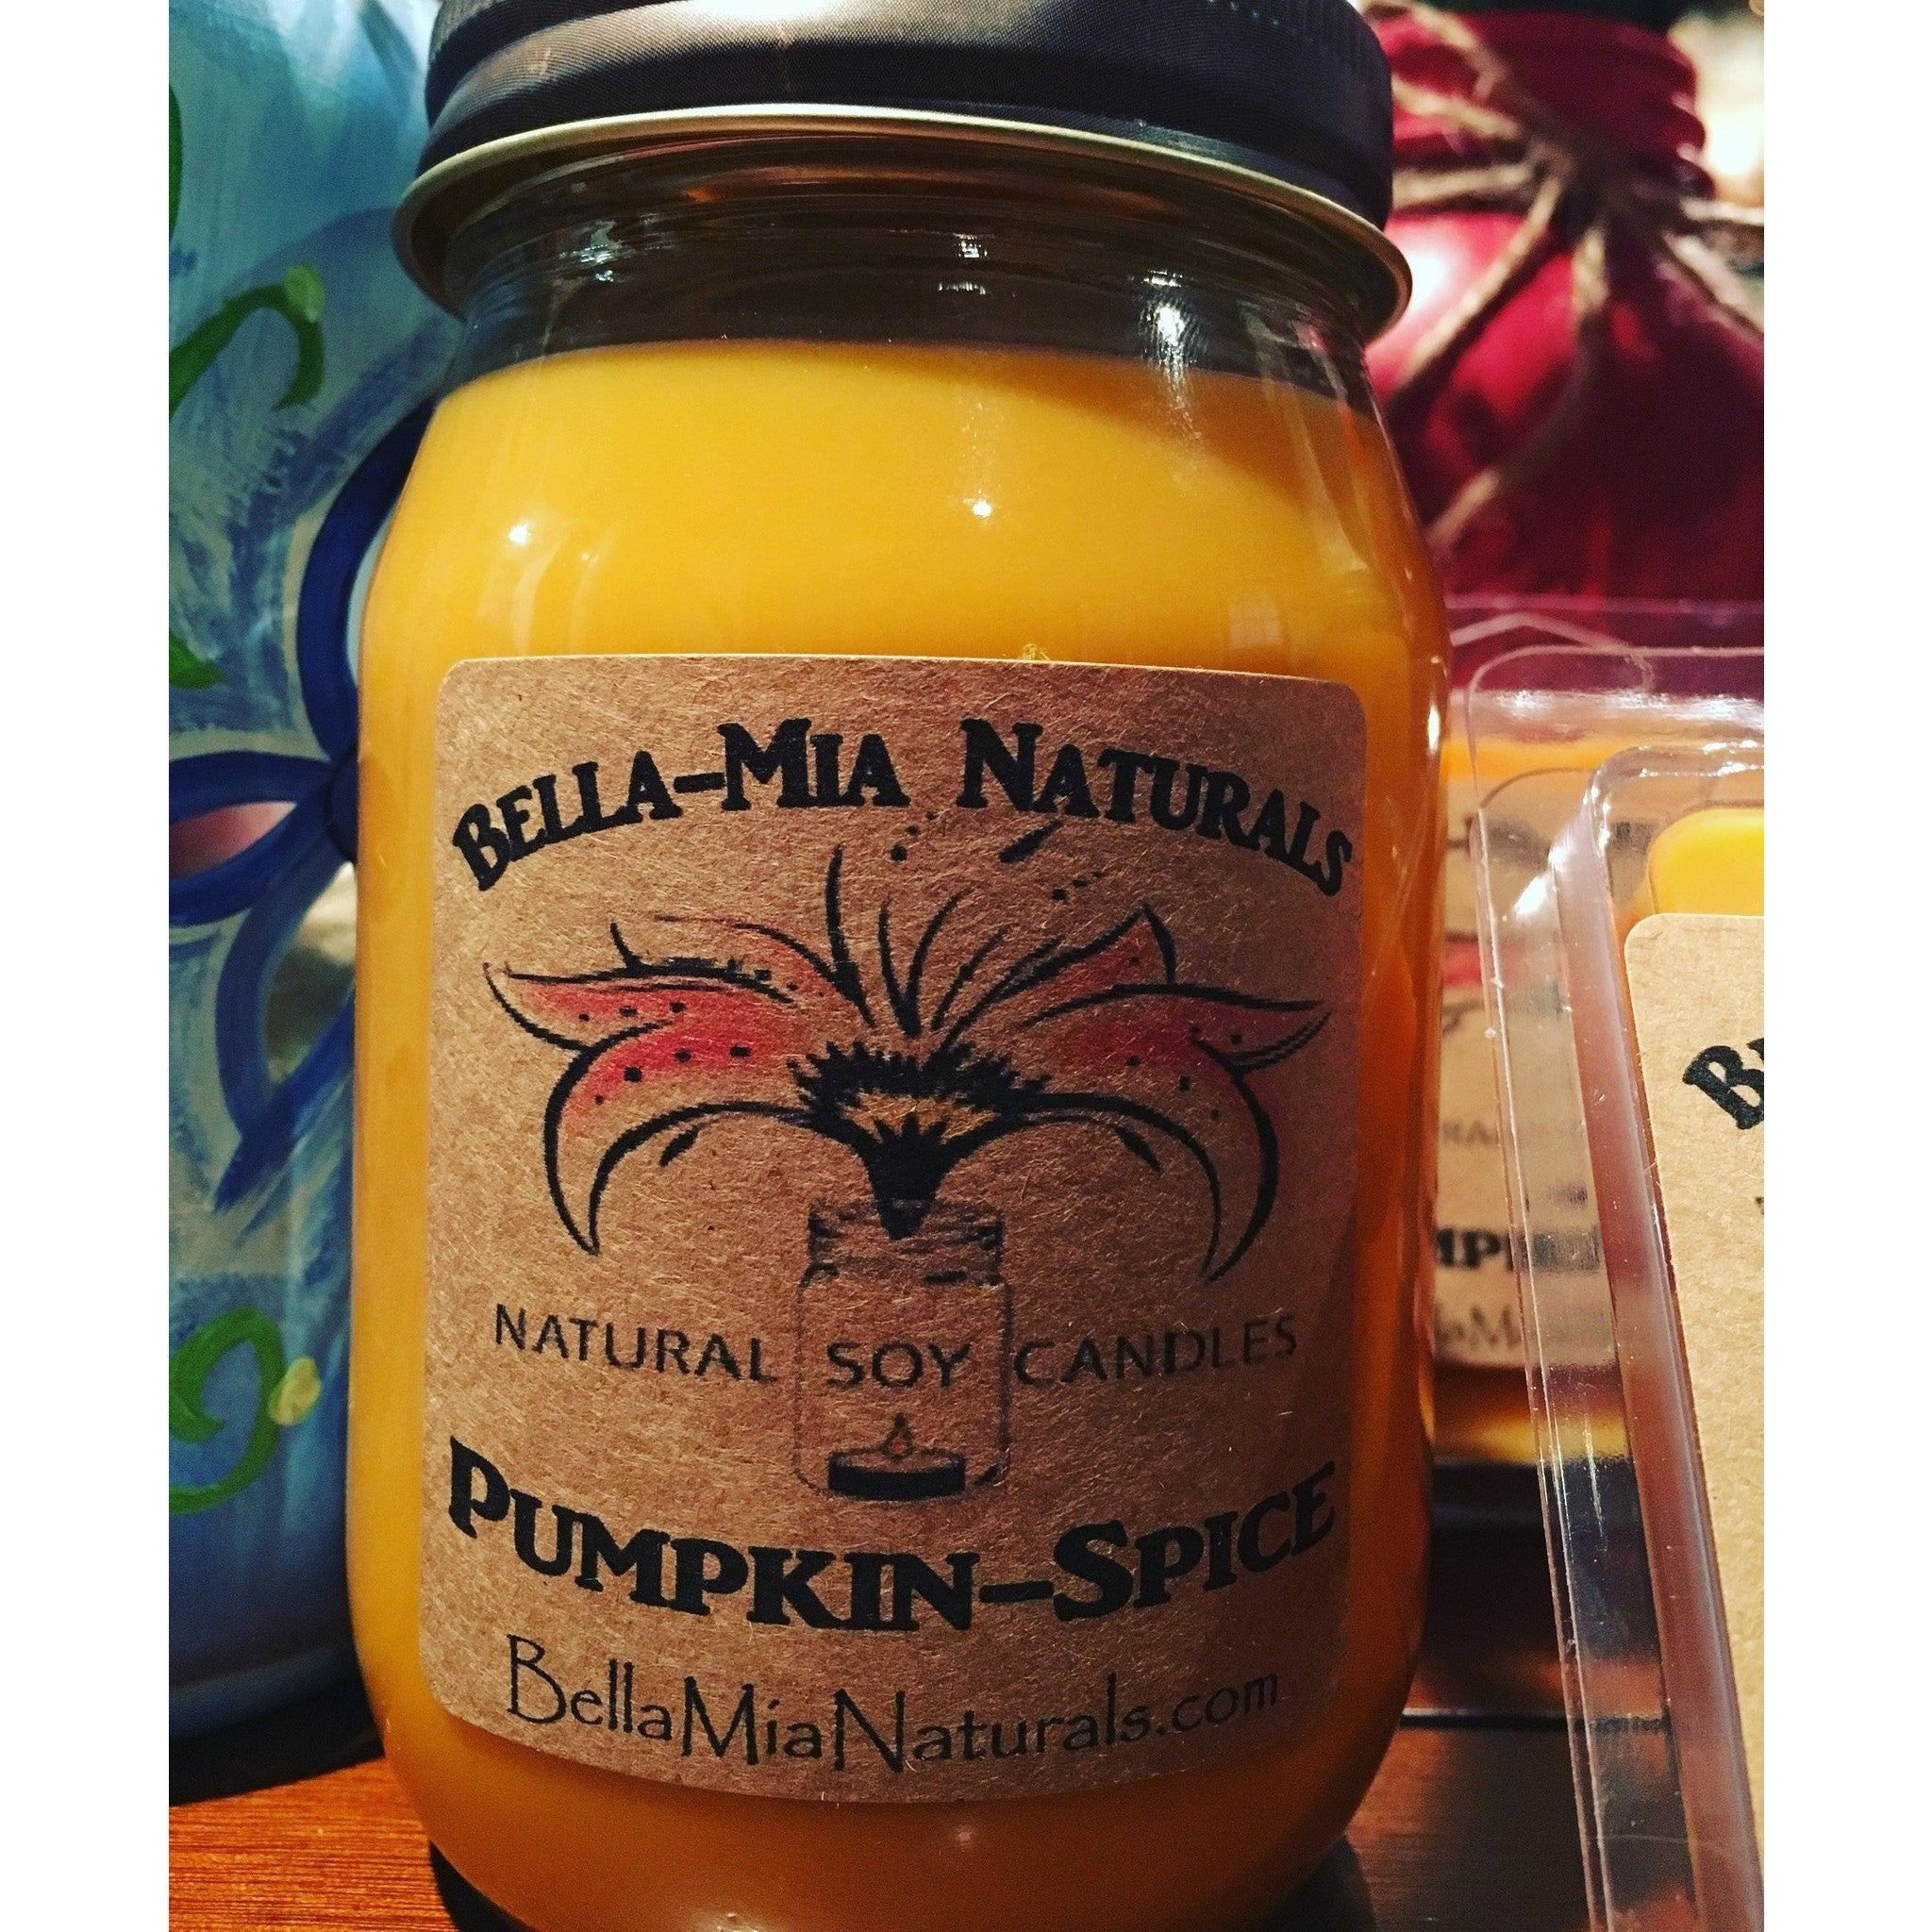 Pumpkin-Spice Natural Hand Poured Soy Candles - Pint - Bella-Mia Naturals All Natural Soy Candles & Lip Balms - 1